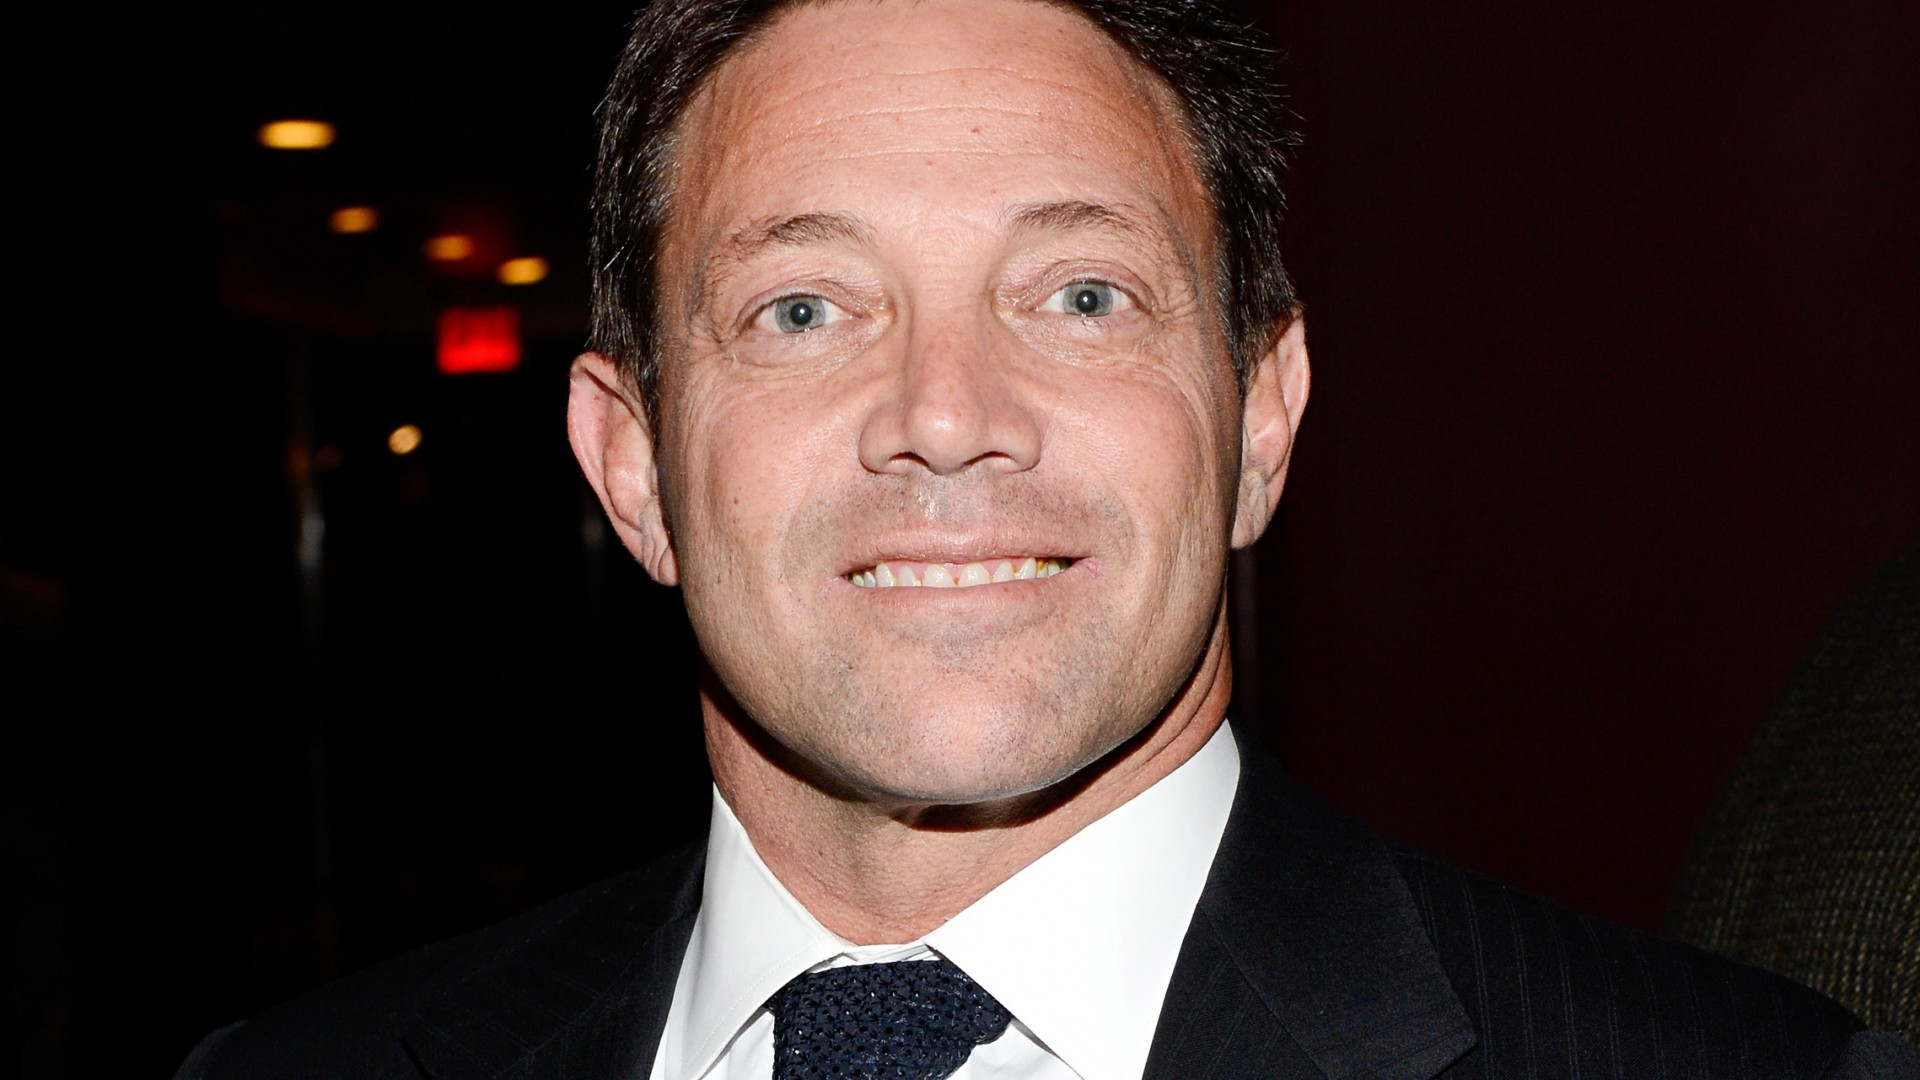 Hd Jordan Belfort Wallpaper Hd Wallpapers